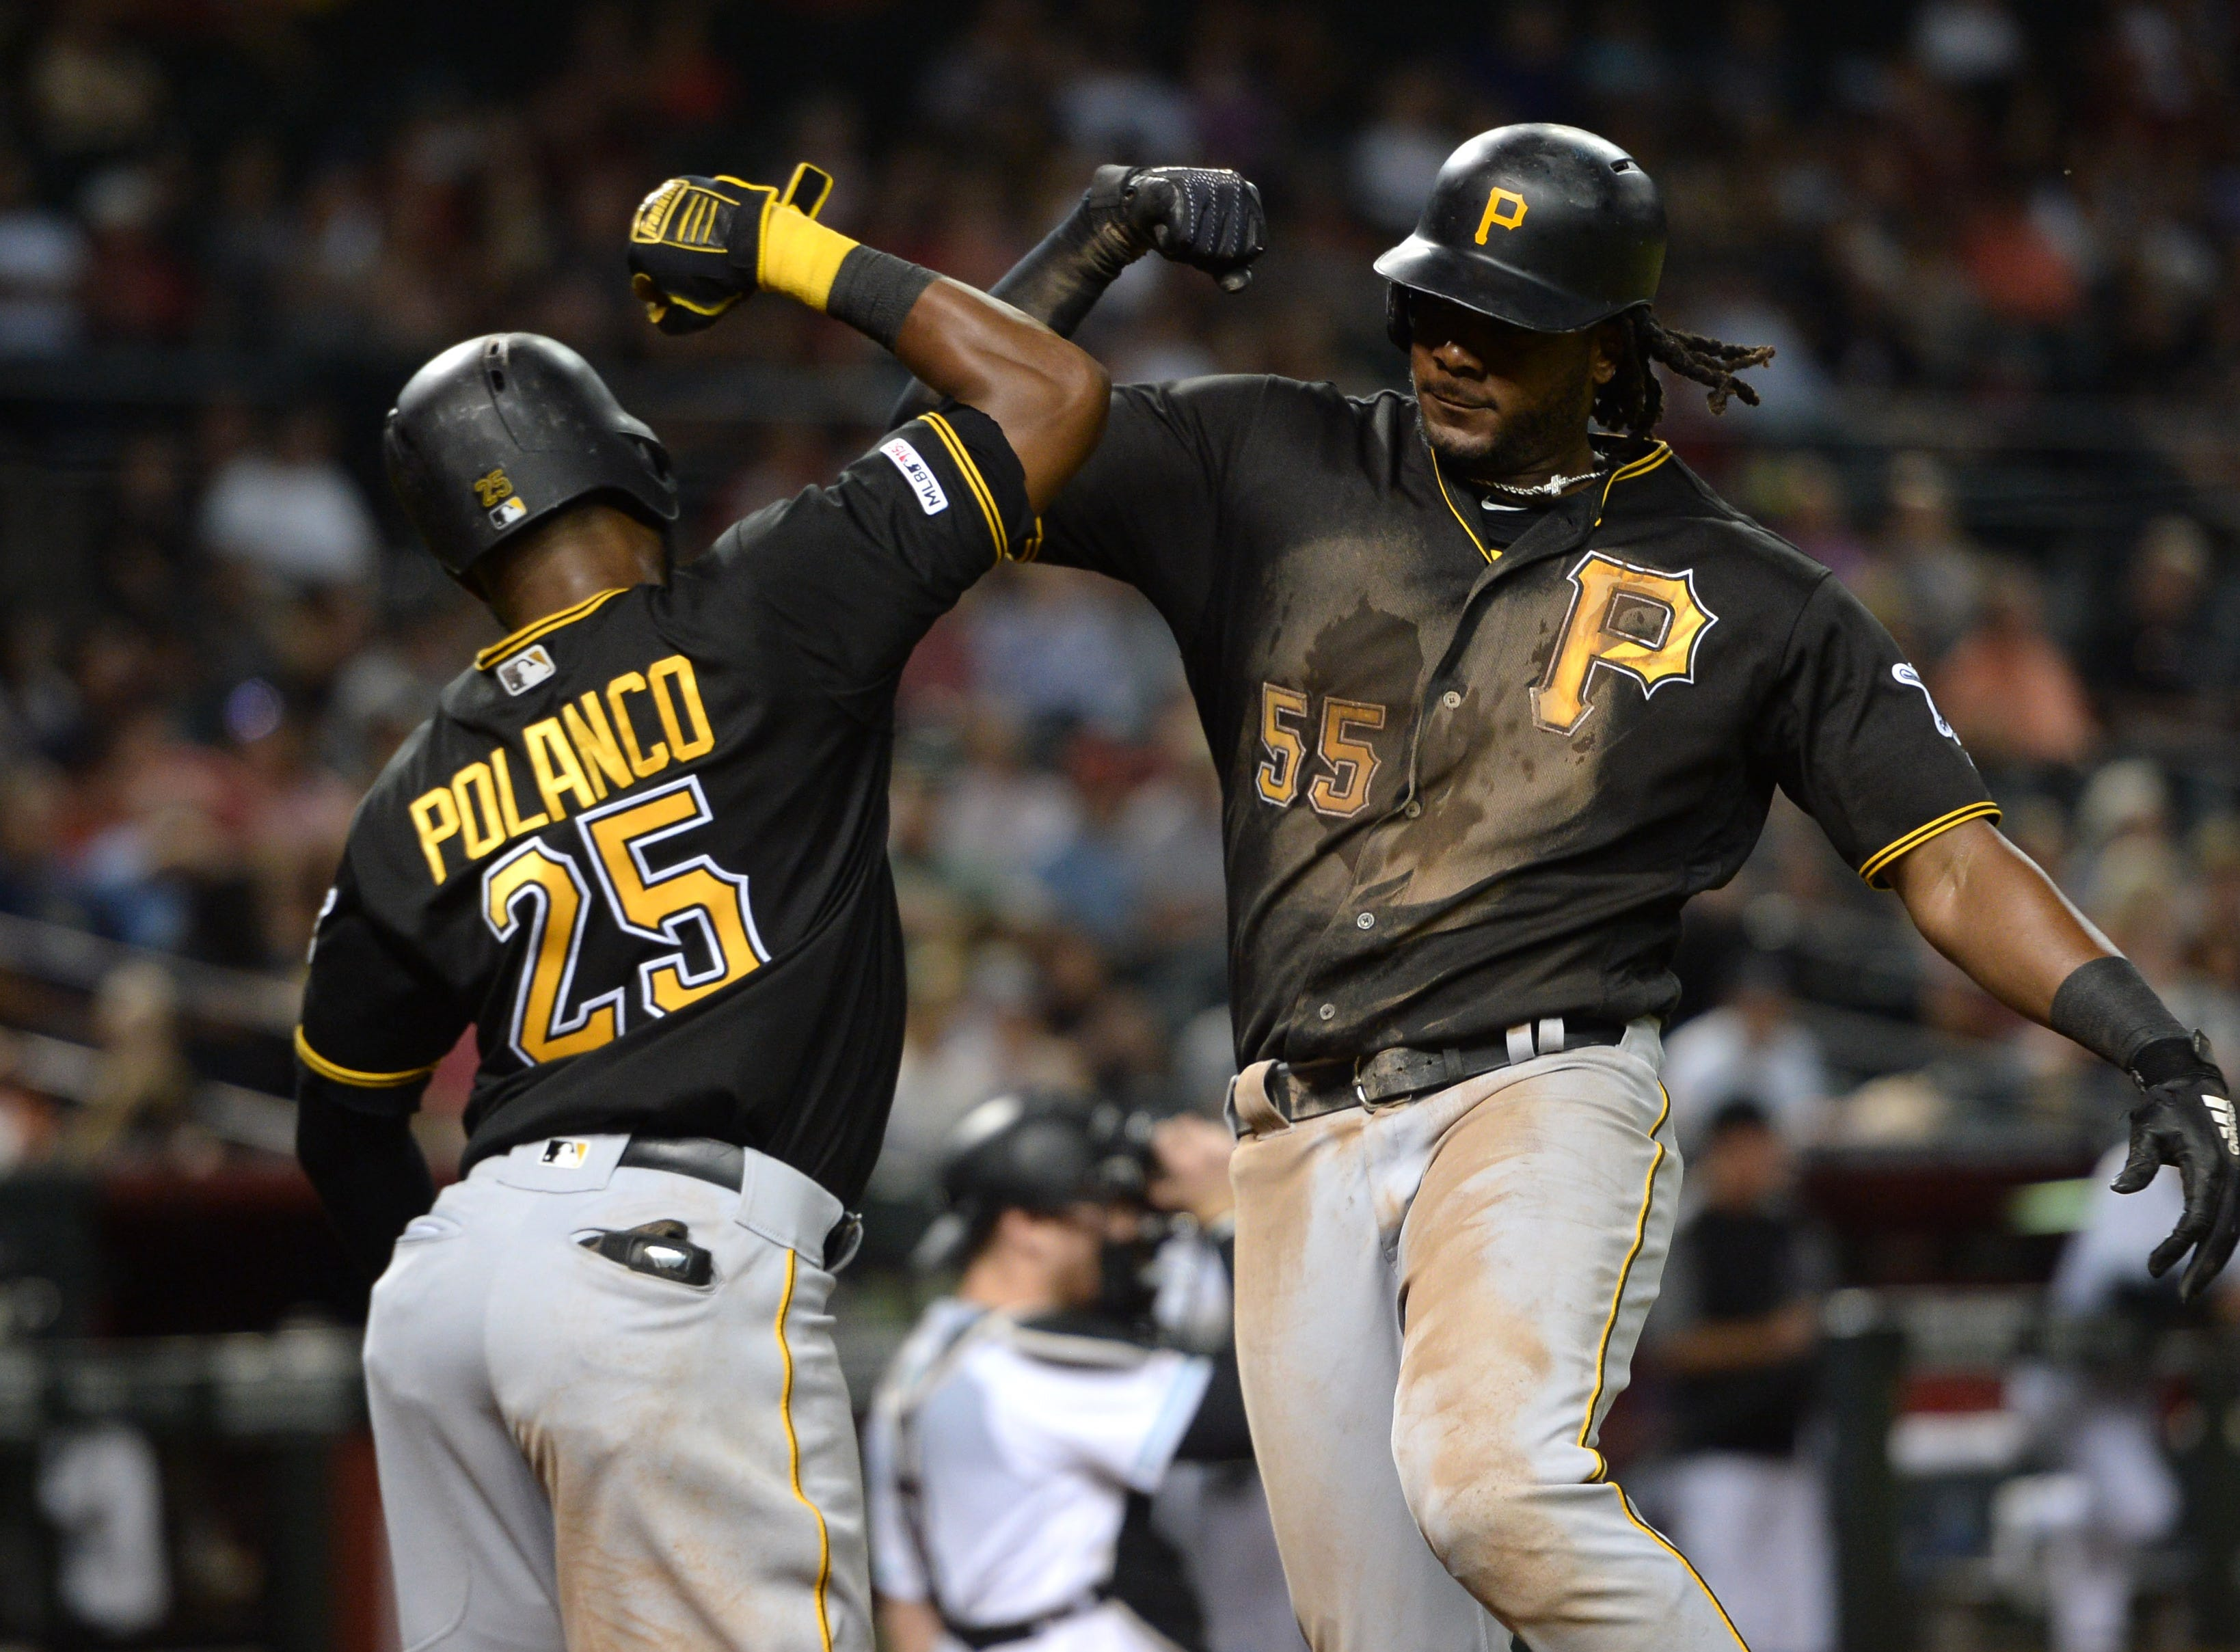 May 14, 2019; Phoenix, AZ, USA; Pittsburgh Pirates first baseman Josh Bell (55) celebrates with right fielder Gregory Polanco (25) after hitting a two run home run against the Arizona Diamondbacks during the fifth inning at Chase Field. Mandatory Credit: Joe Camporeale-USA TODAY Sports